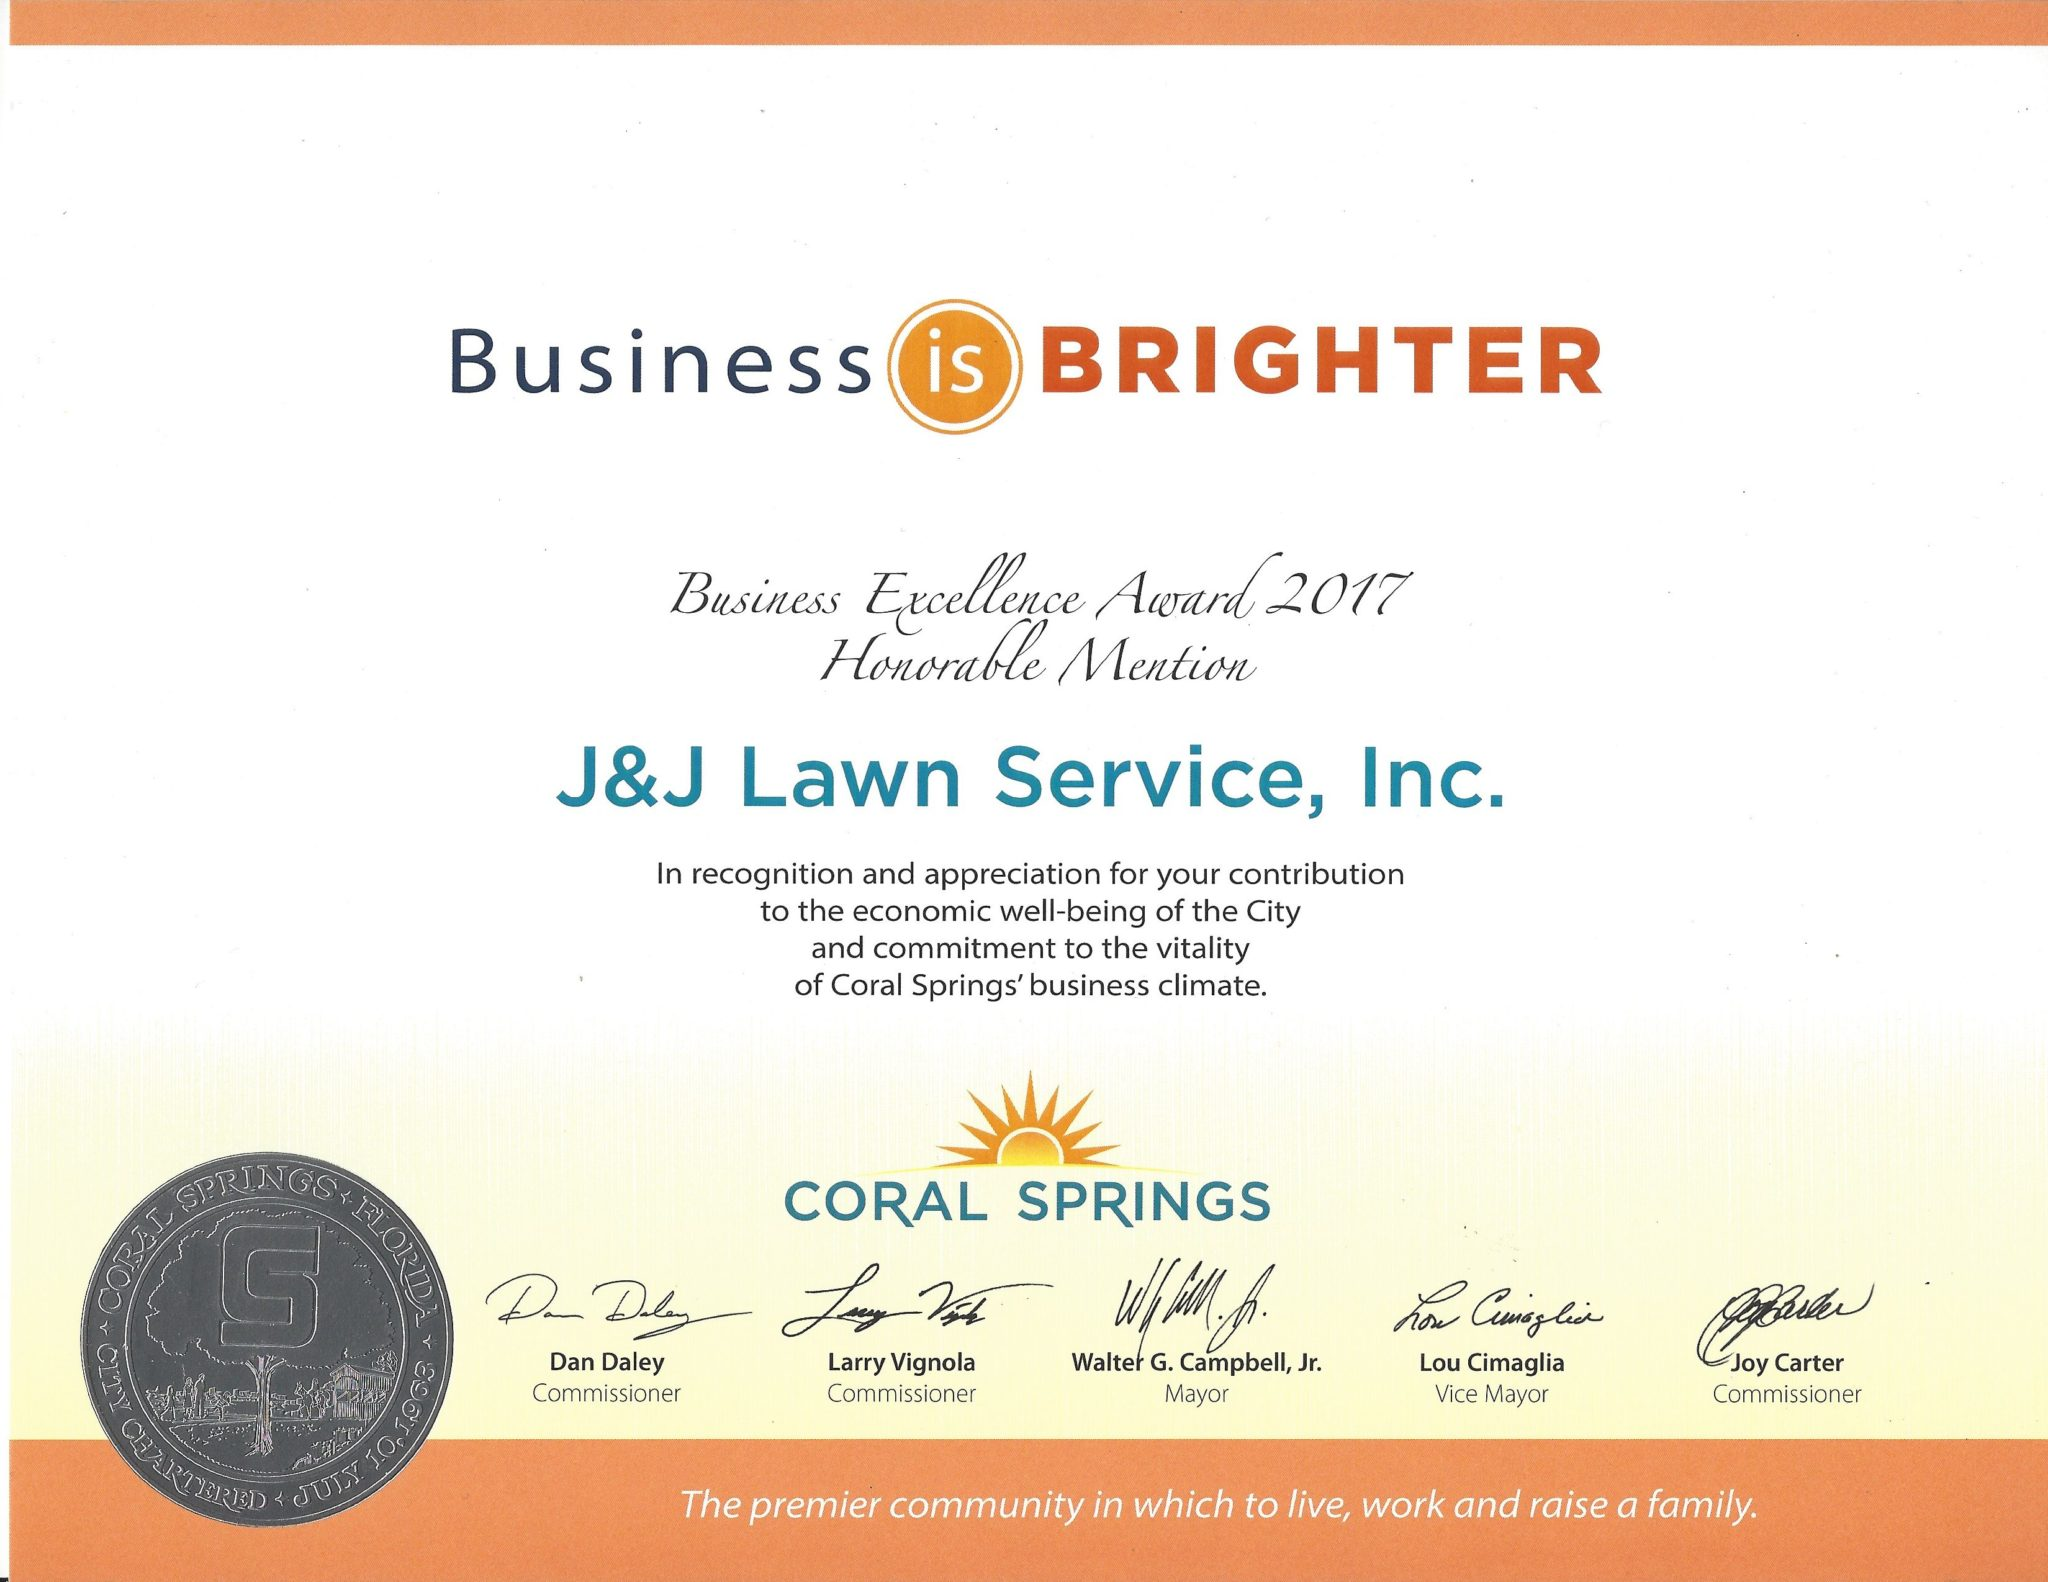 Coral Springs 2017 Business Is Brighter Award Recipient